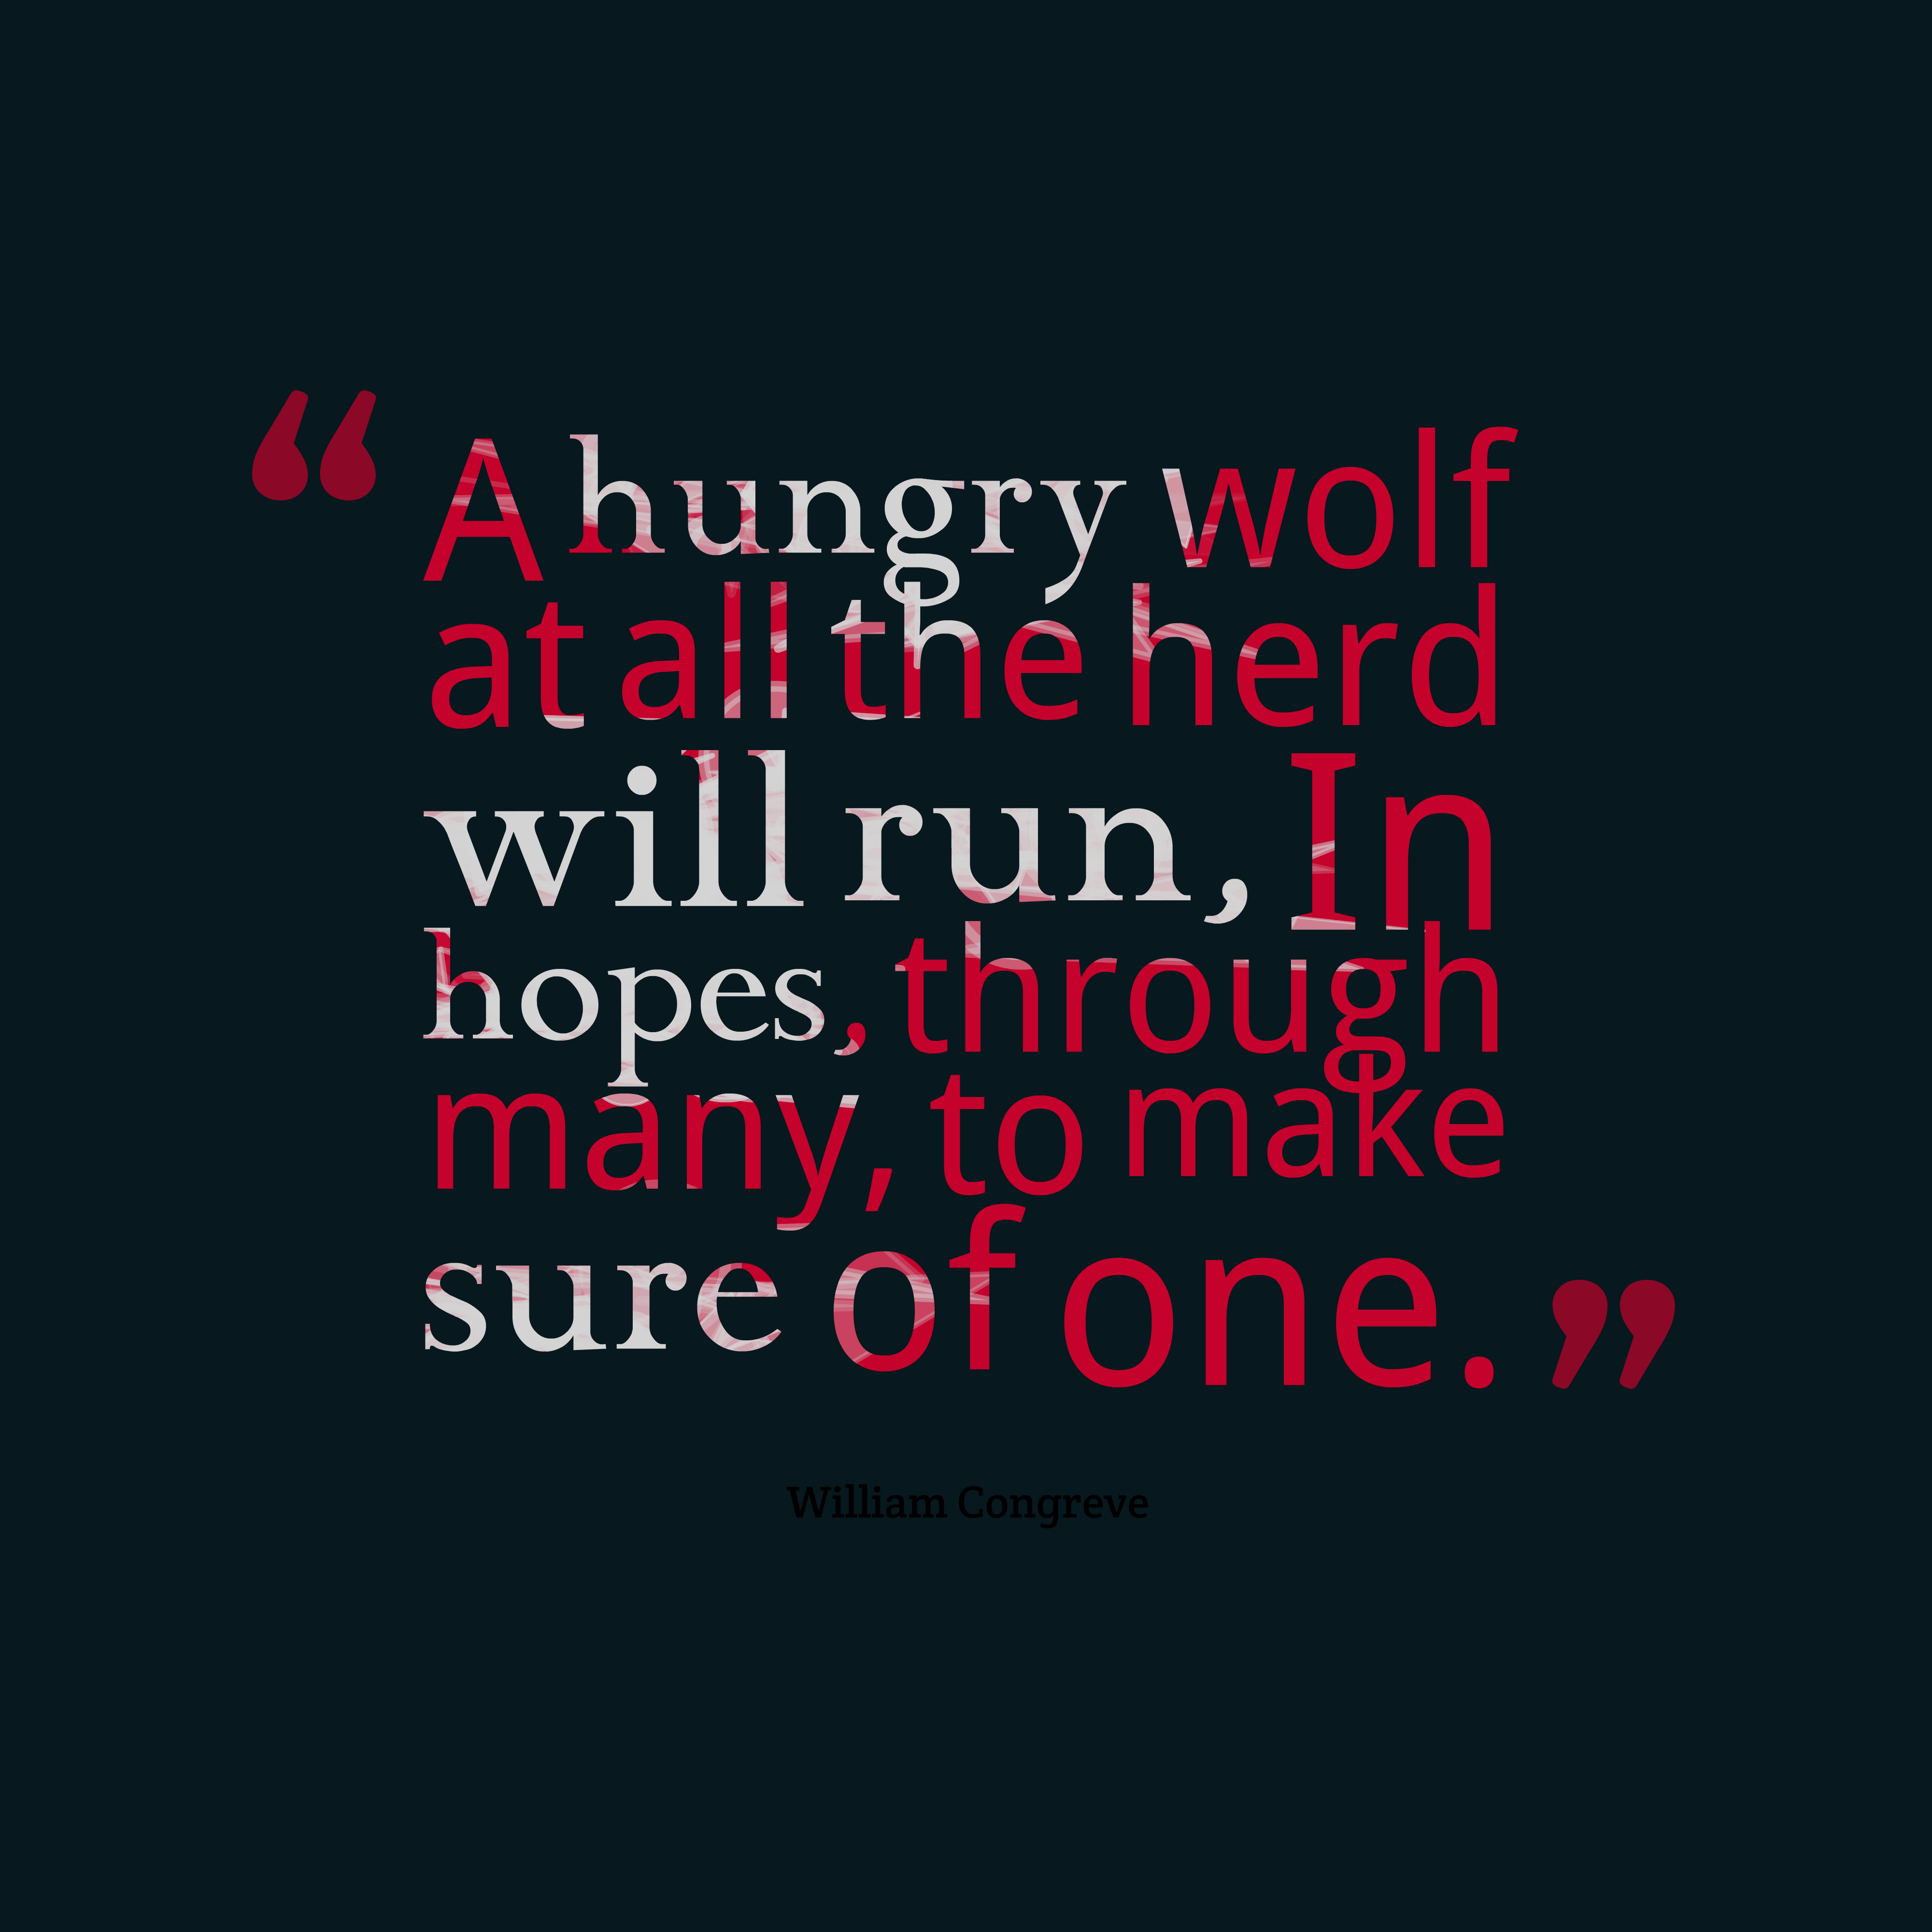 Quotes image of A hungry wolf at all the herd will run, In hopes, through many, to make sure of one.